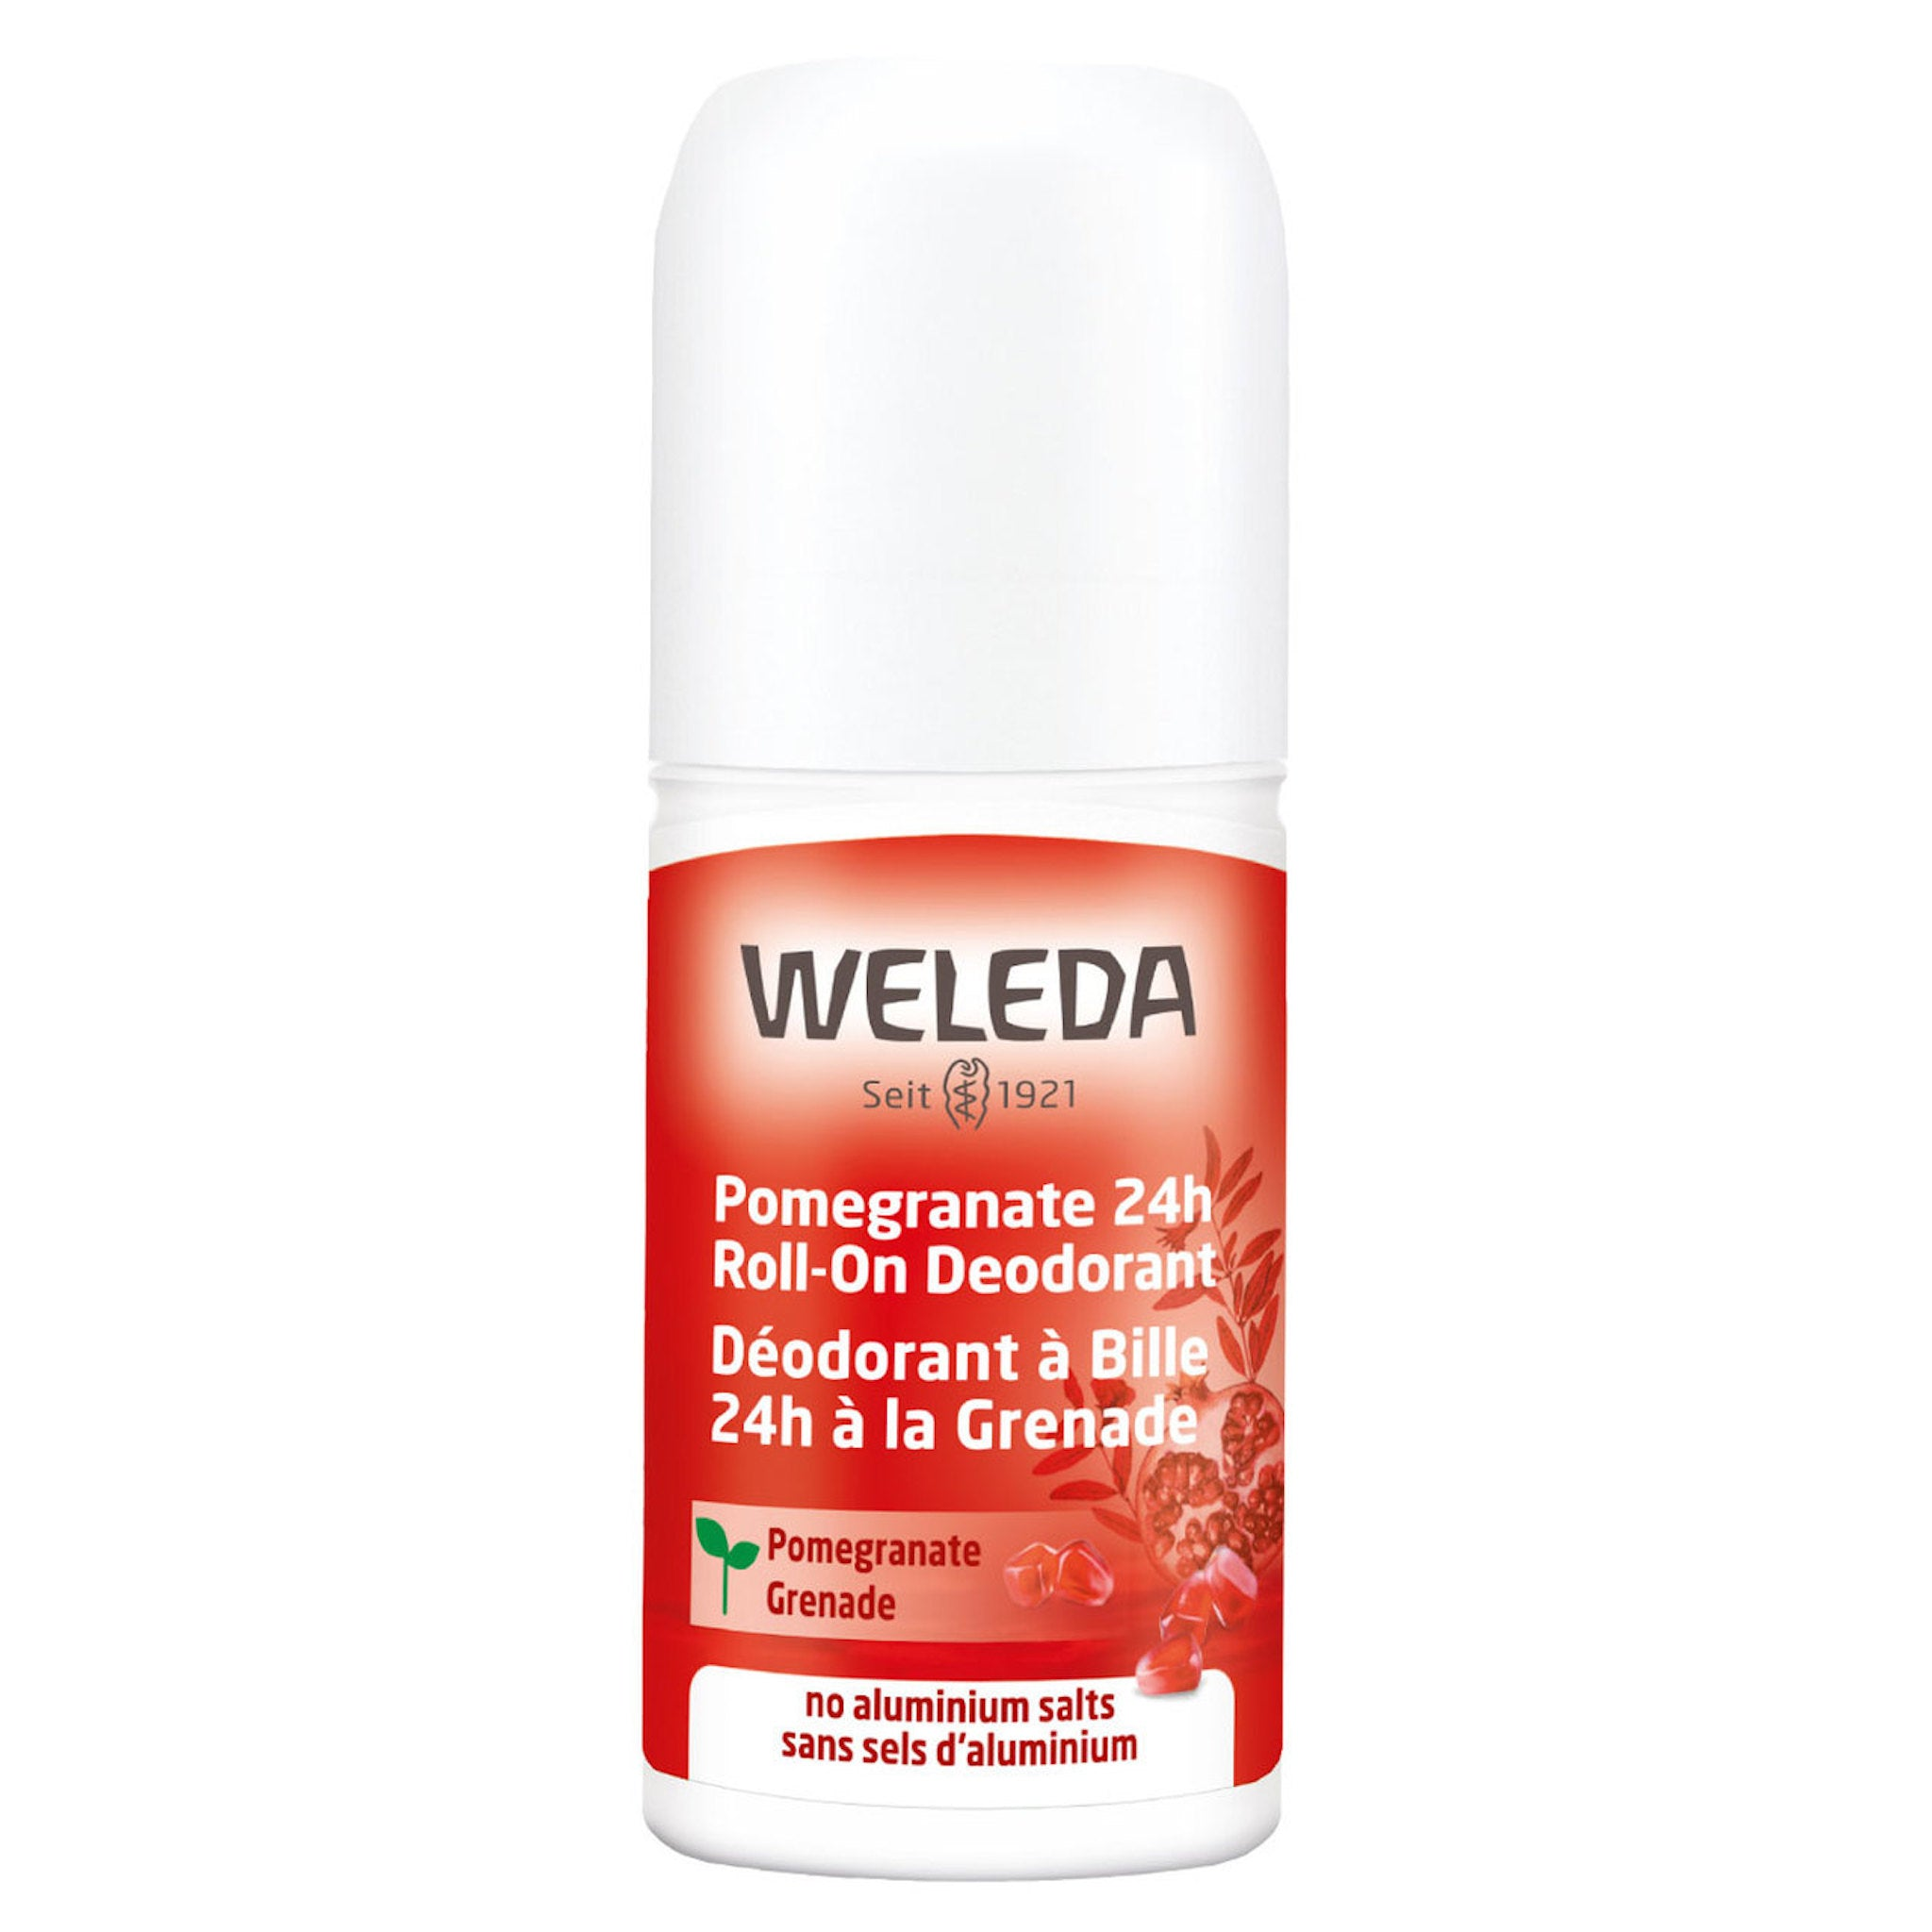 Weleda Pomegranate 24 Hour Roll On Deodorant 50ml